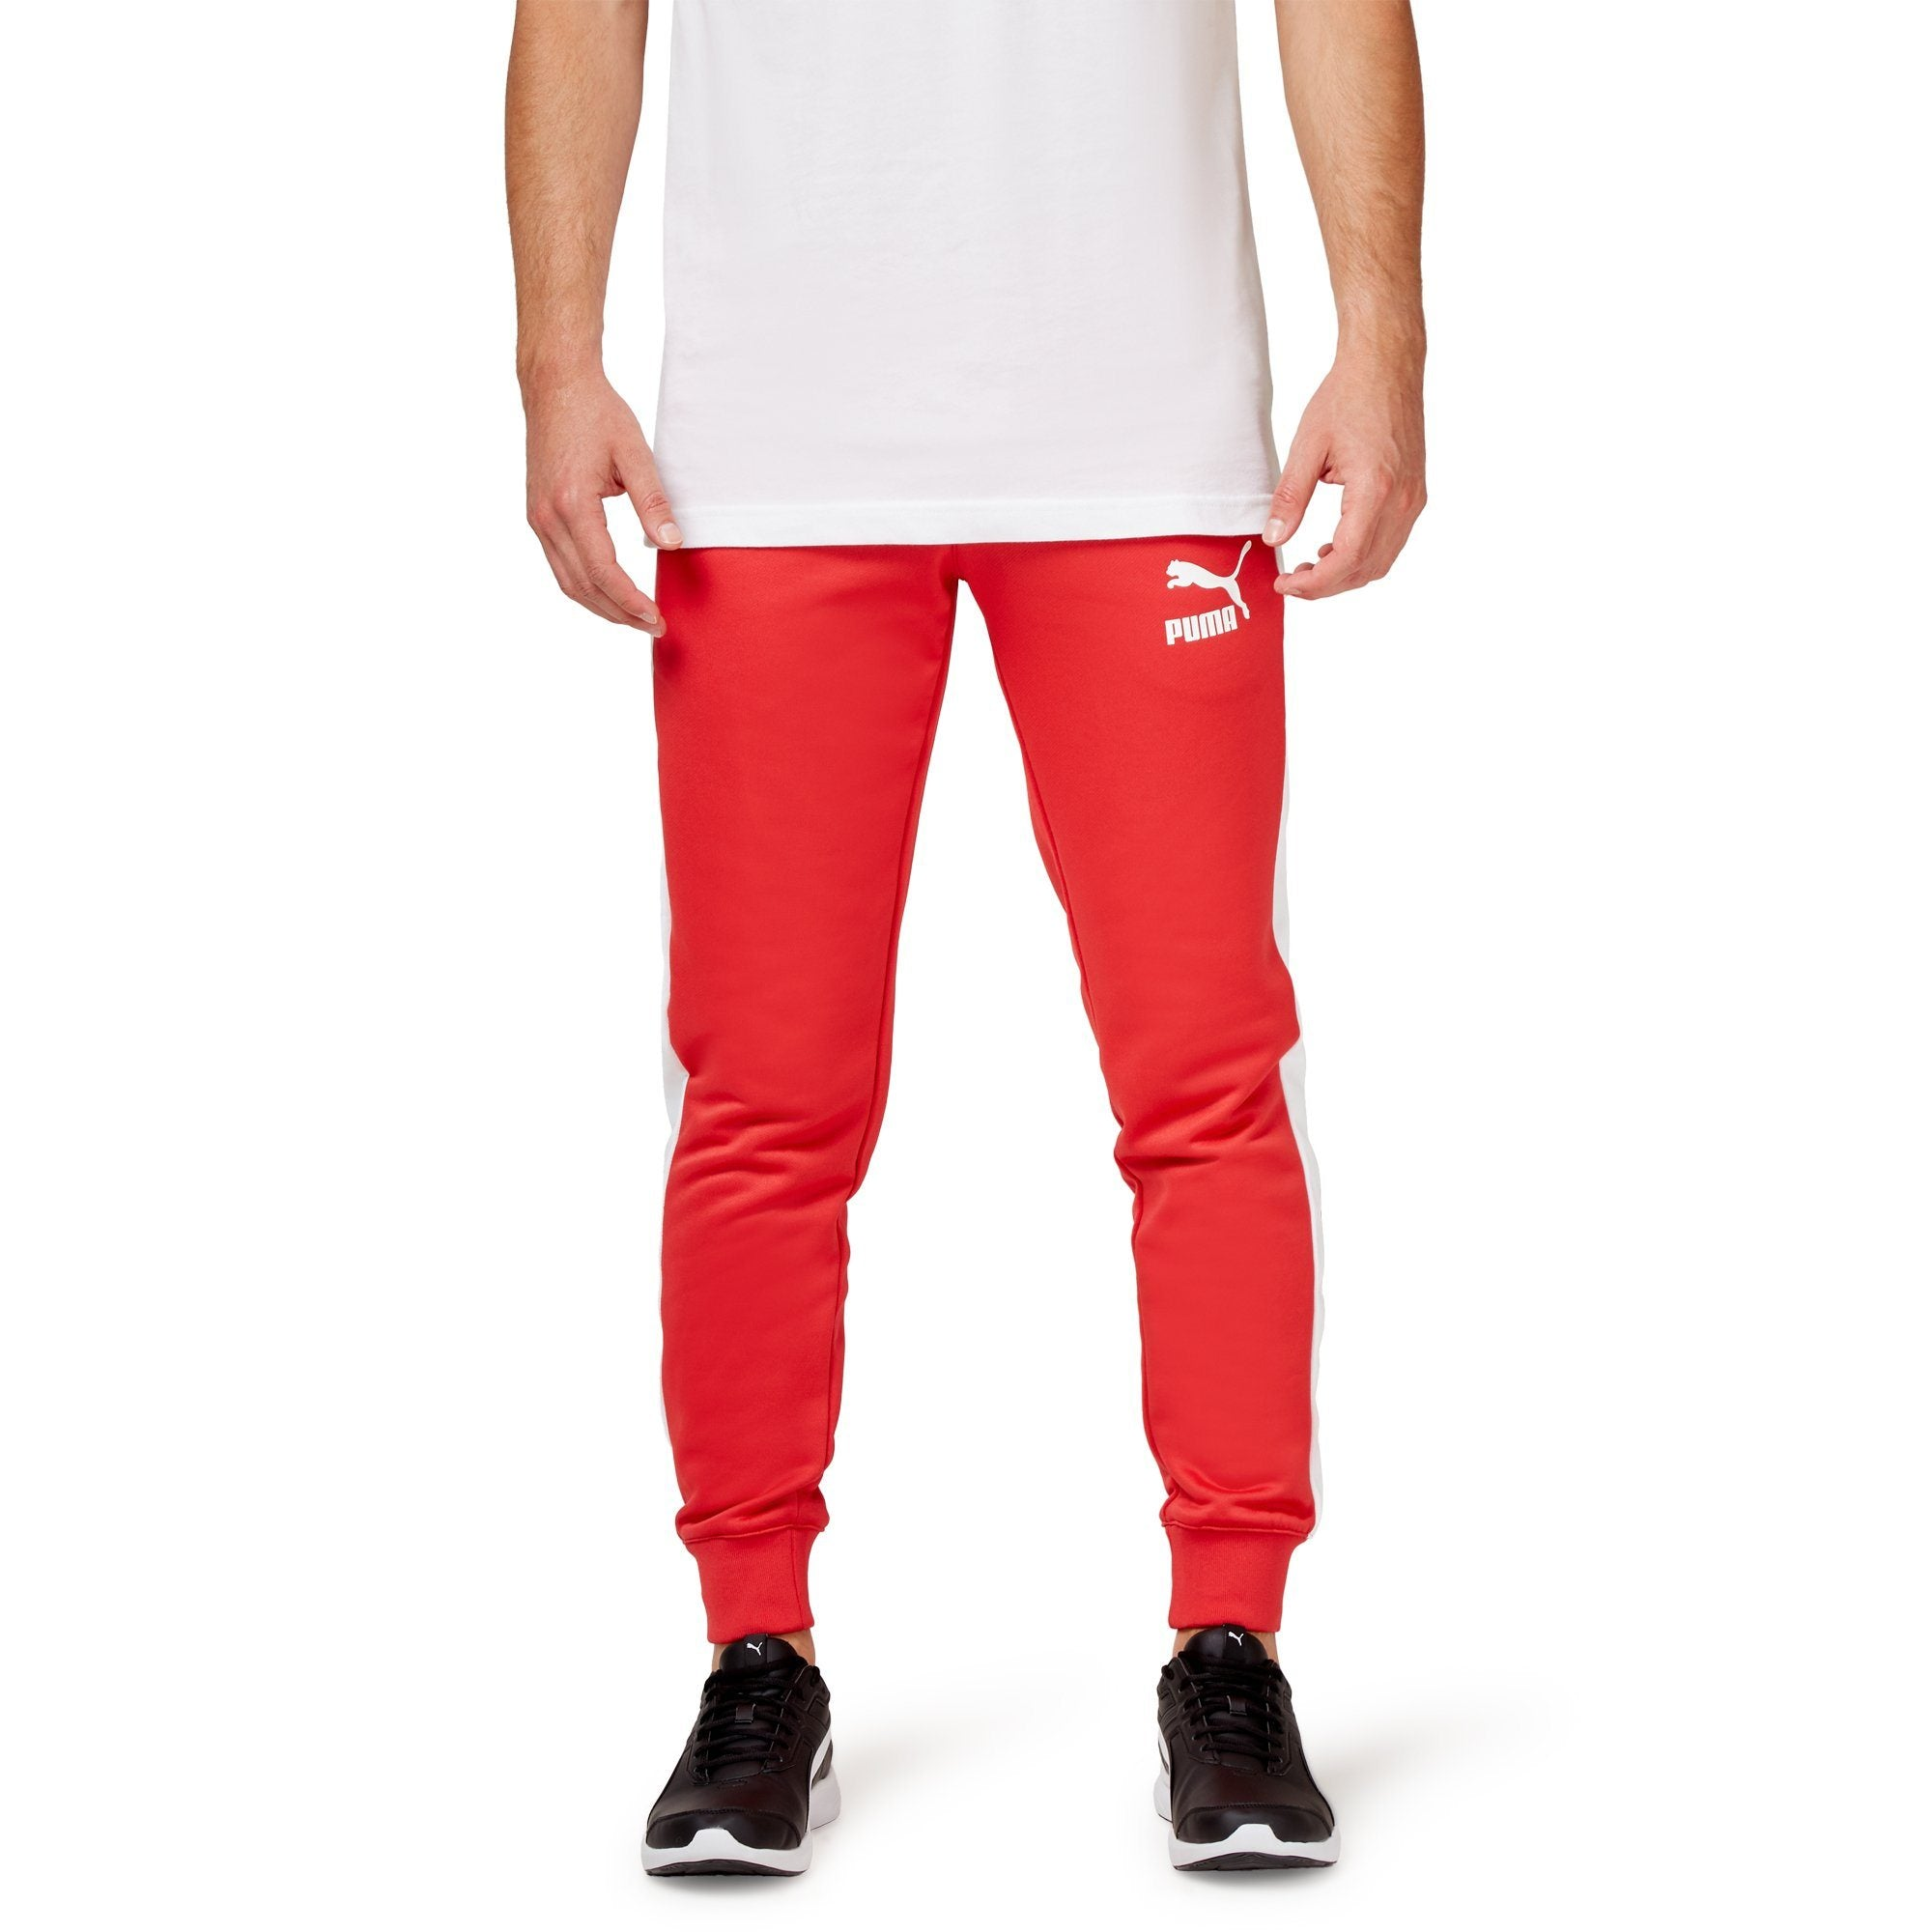 Puma Classics T7 Track Pants - Red Apparel Puma